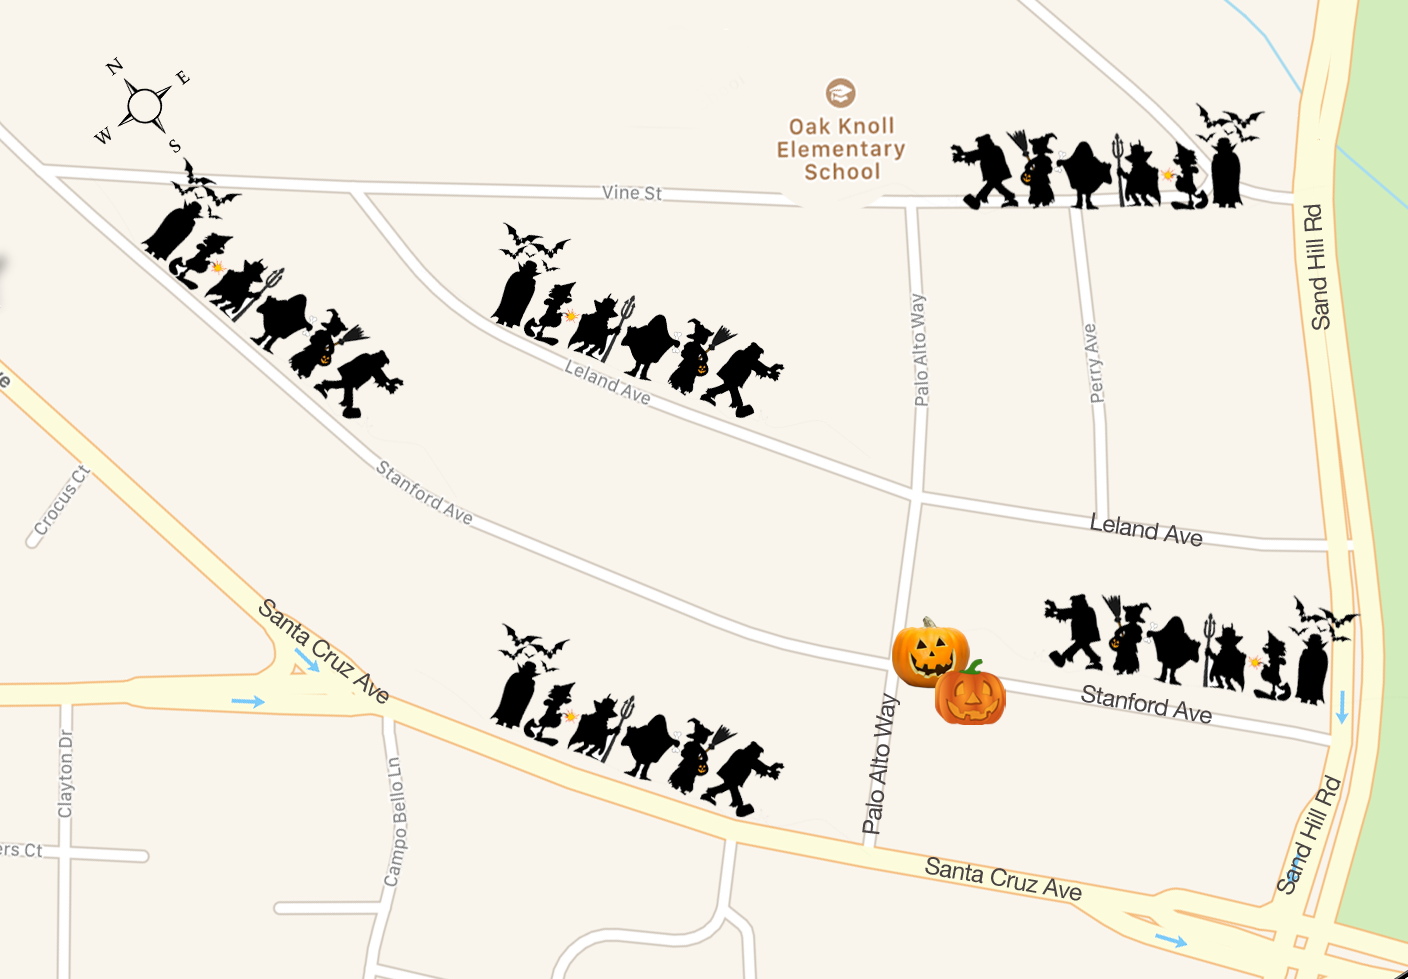 Our Traditional Neighborhood Halloween Events